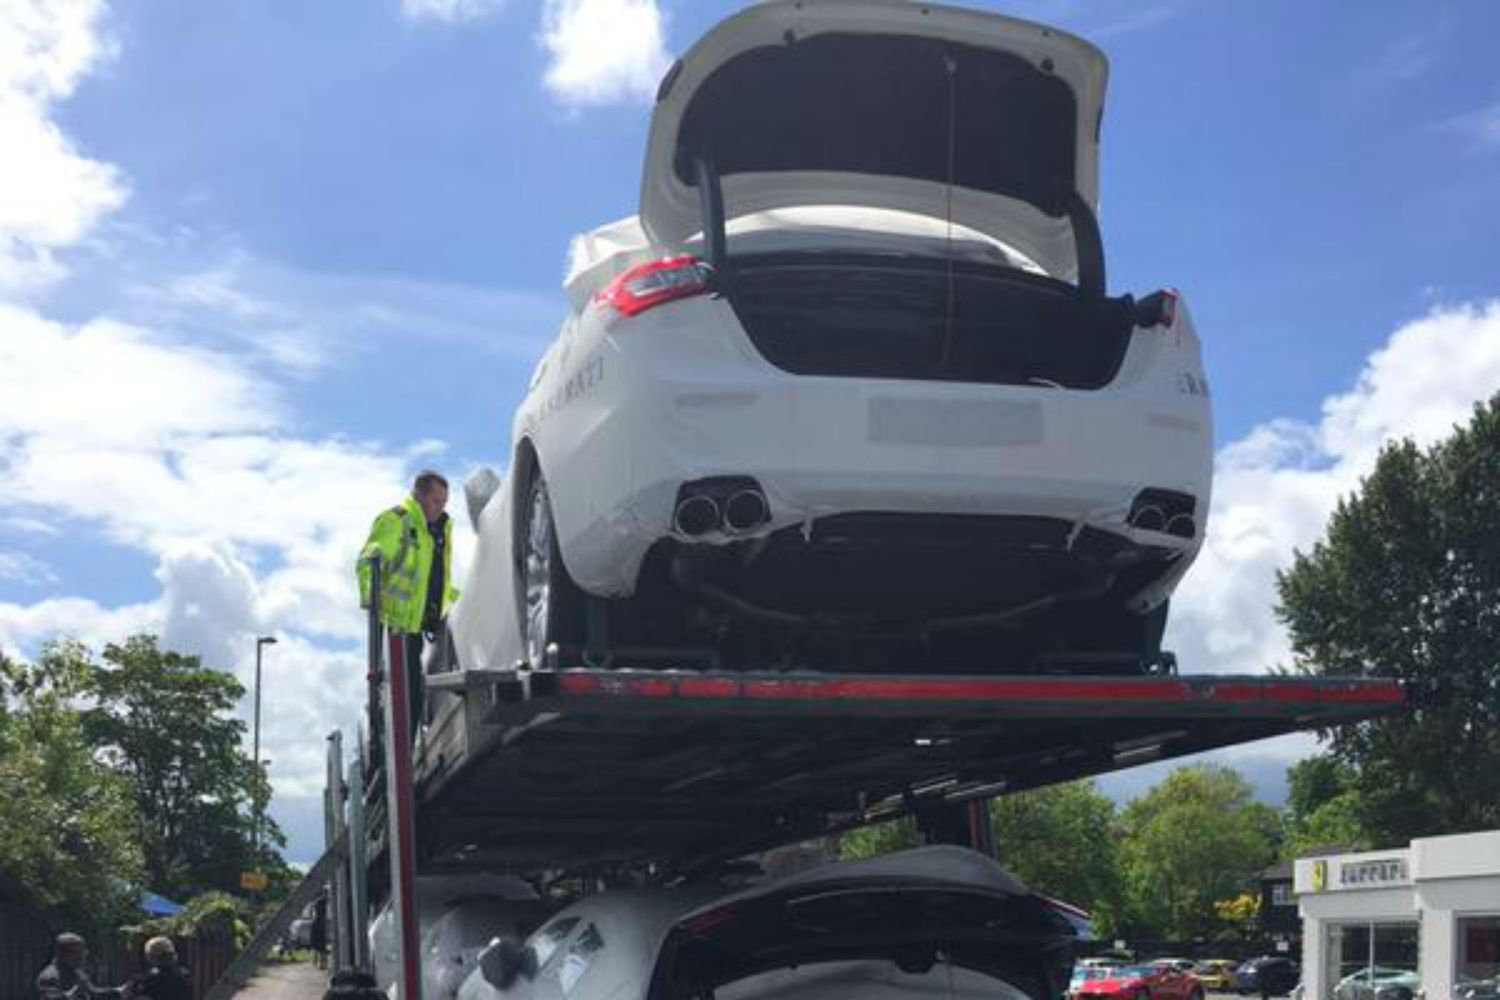 Immigrants found sneaking into UK in boots of Maseratis